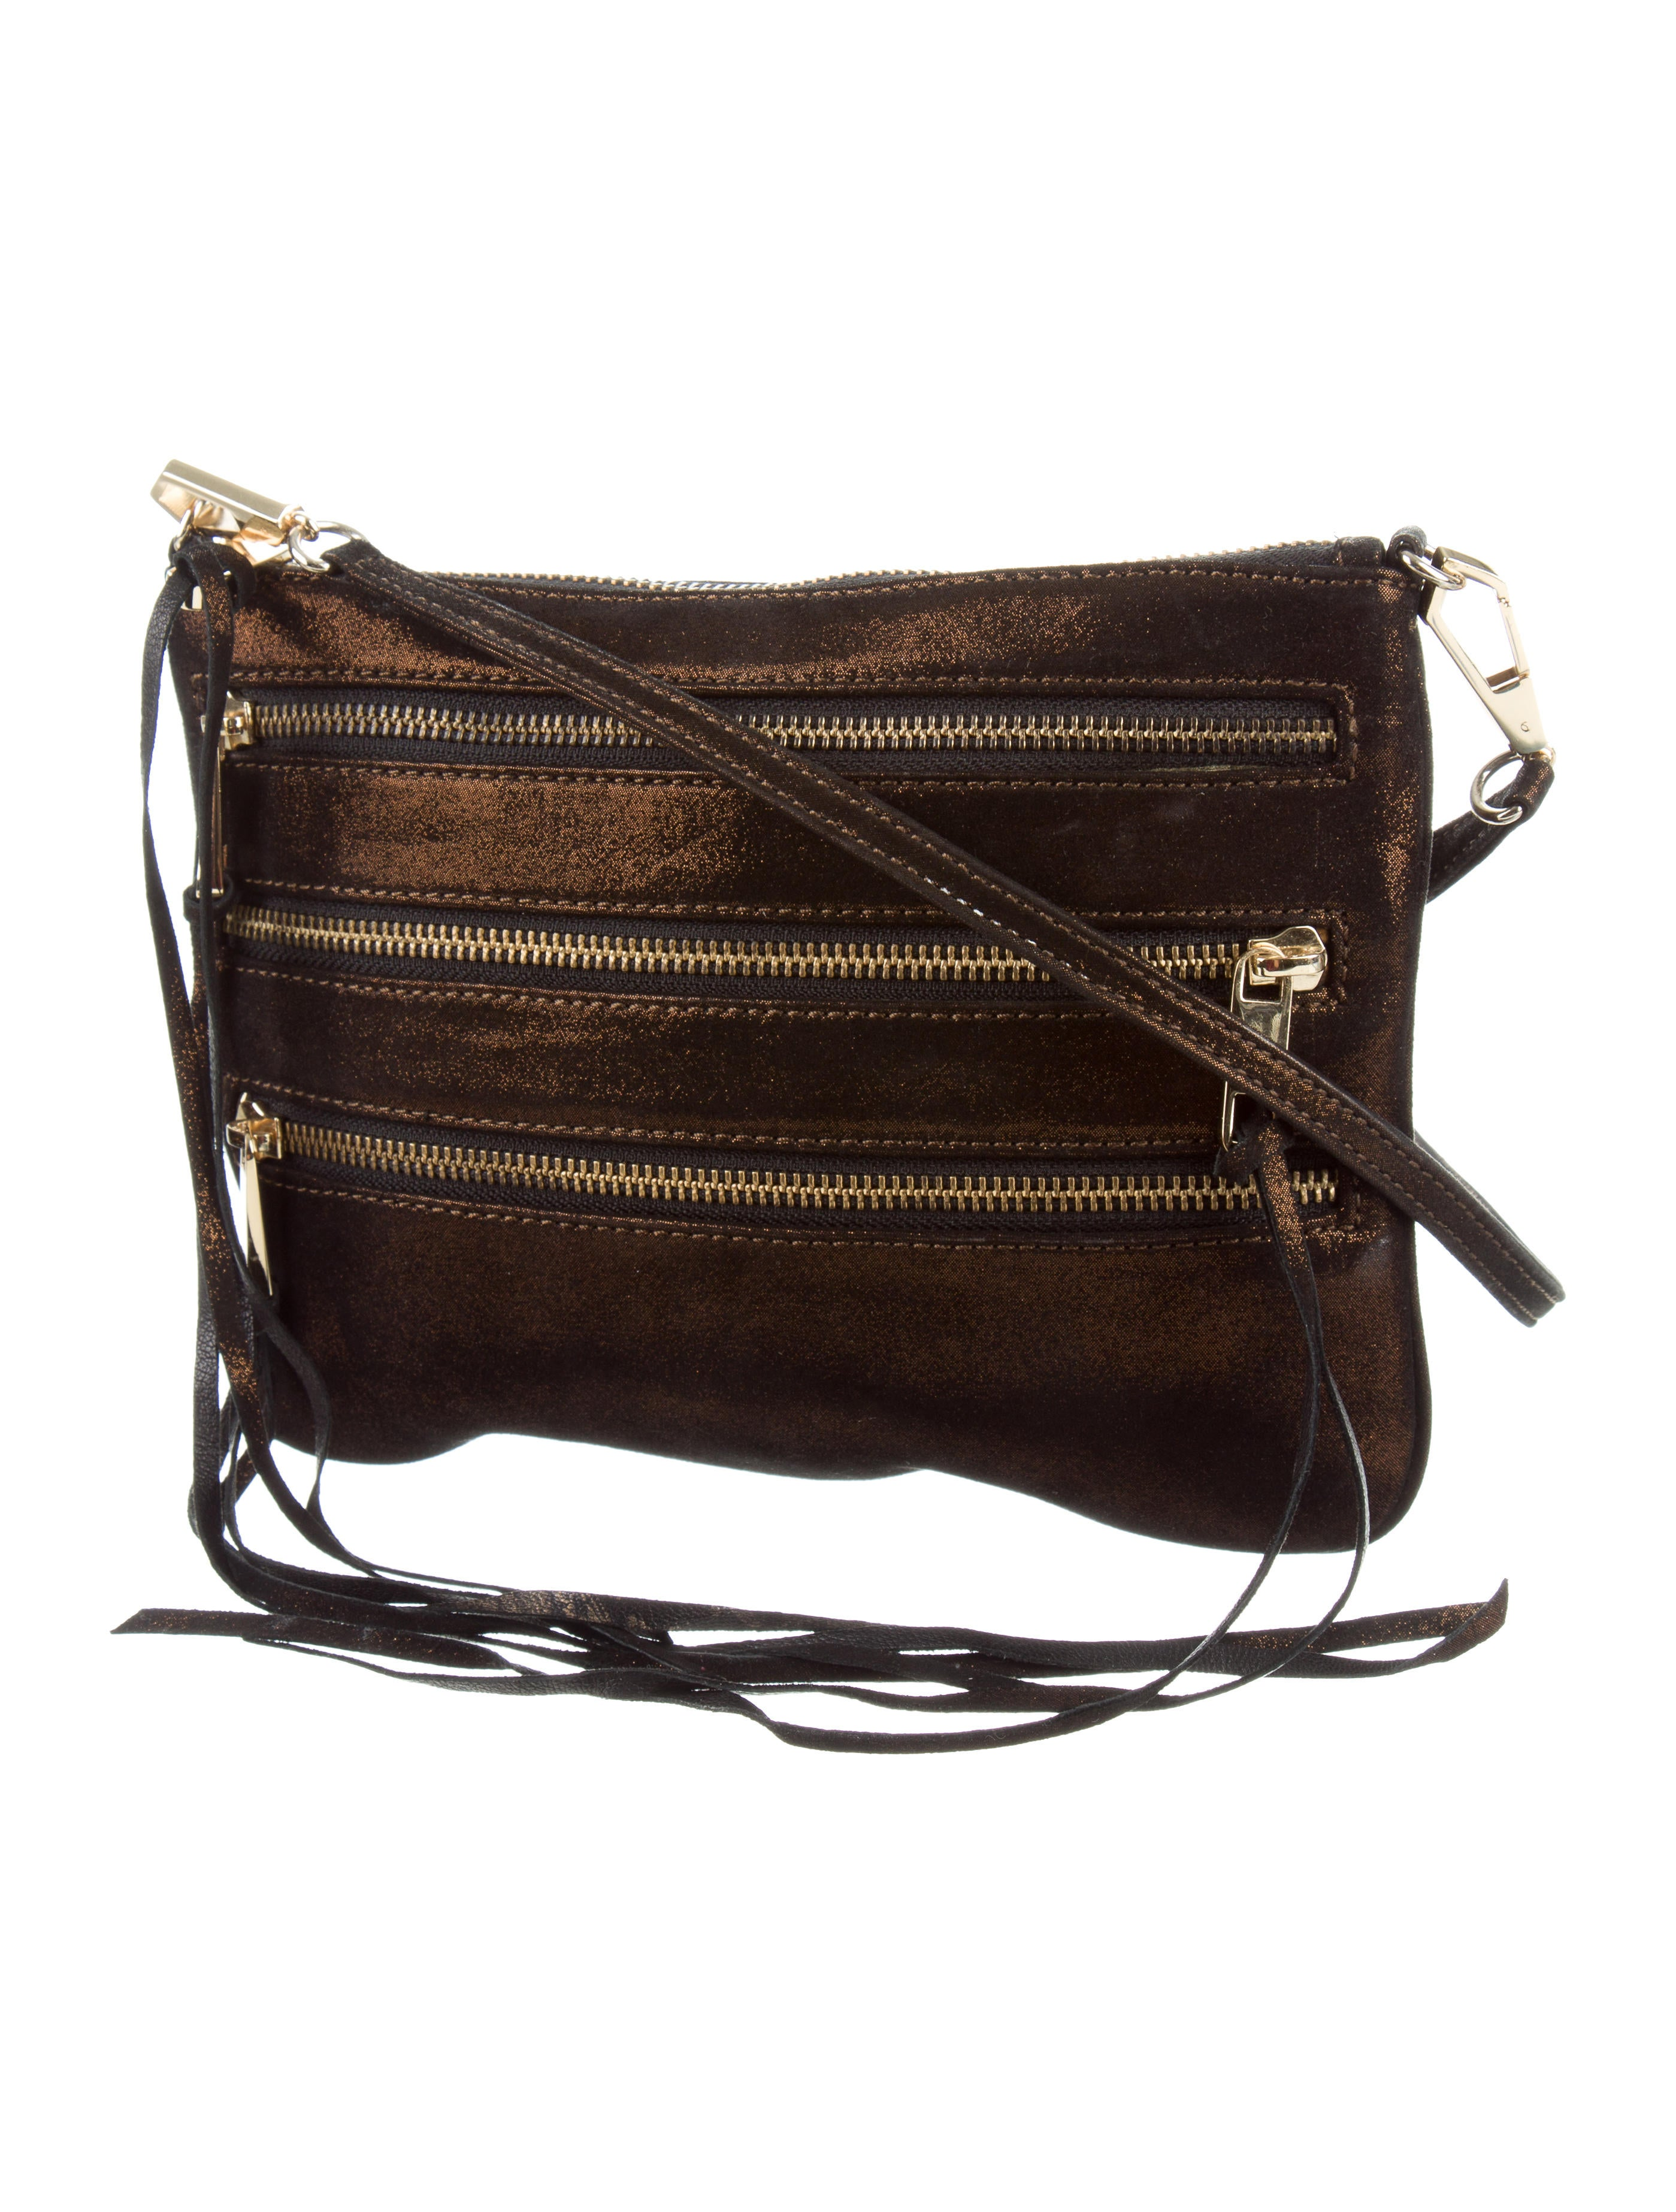 A fresh, modern take on a classic purse style, our versatile women's crossbody bags are designed in luxe leathers and feature statement details. Live that hands-free life!